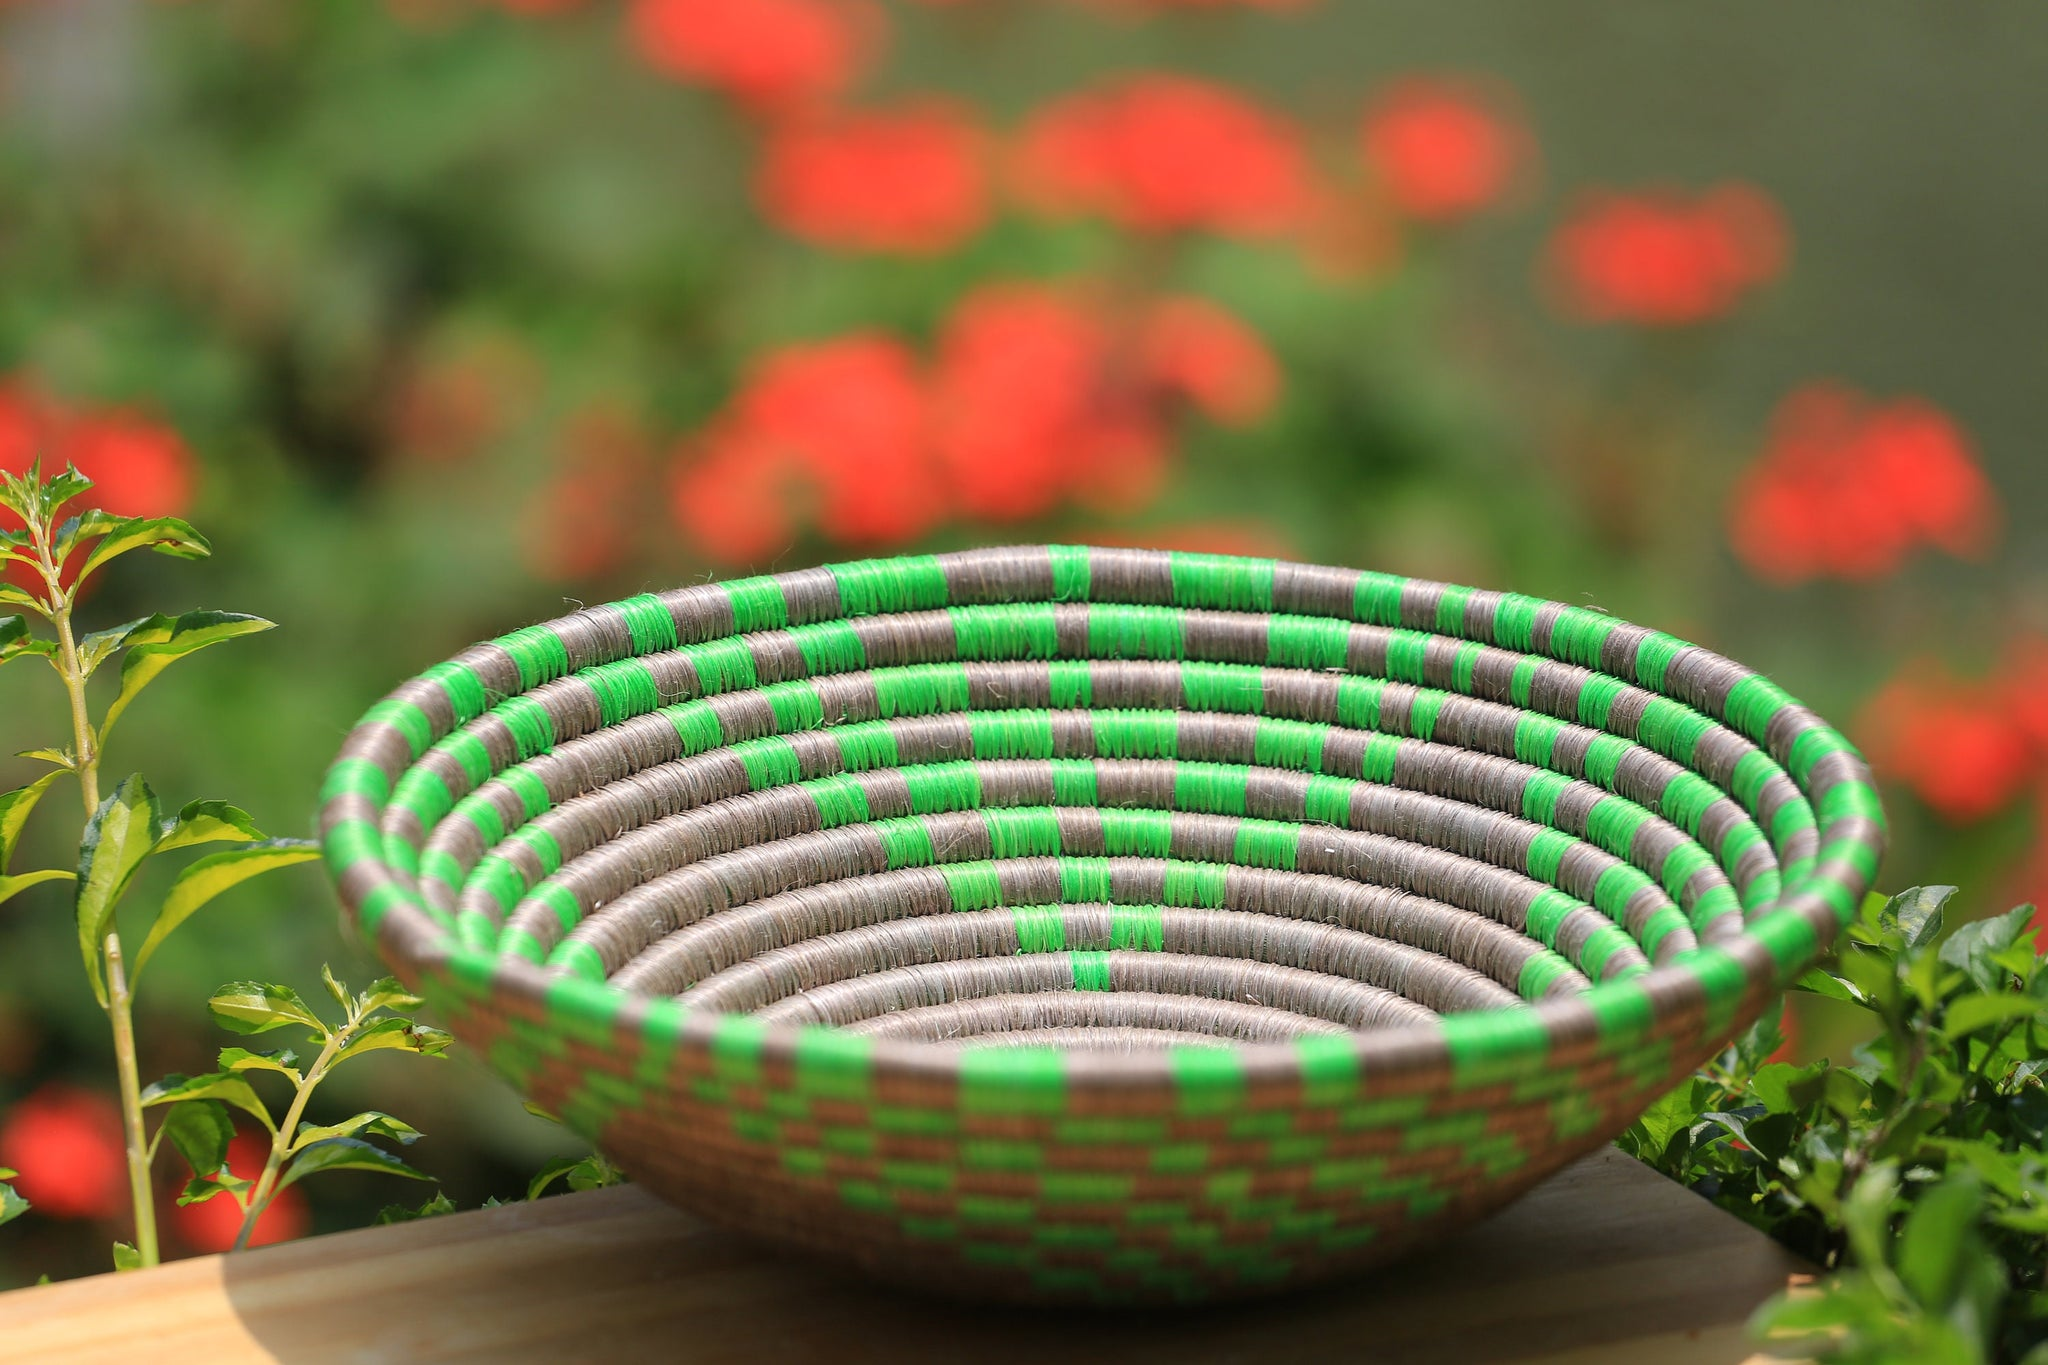 Tokwe African Wall Basket, Rwanda baskets, African Woven basket,  Green and sand - African Baskets , African Basket , Rwanda Baskets , Wall baskets Woven Basket